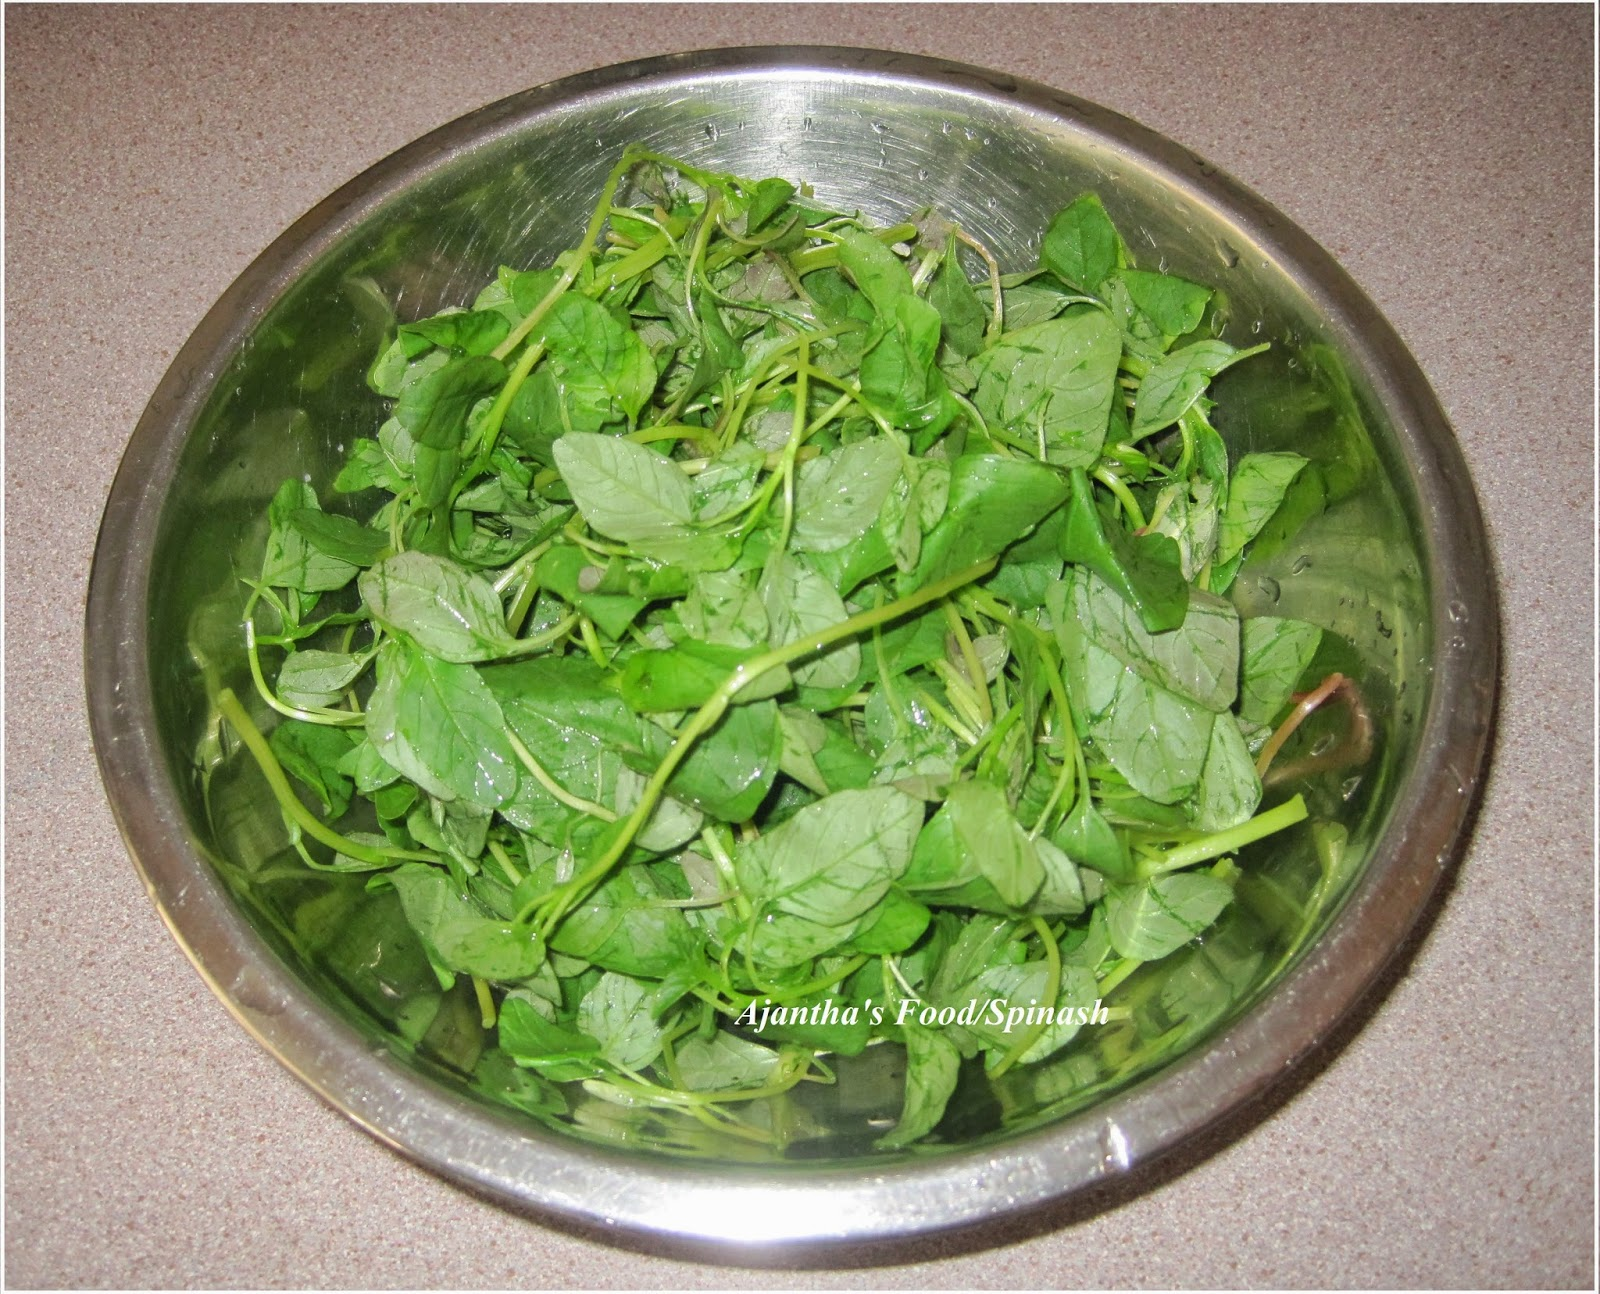 Ajantha's Food/Spinach